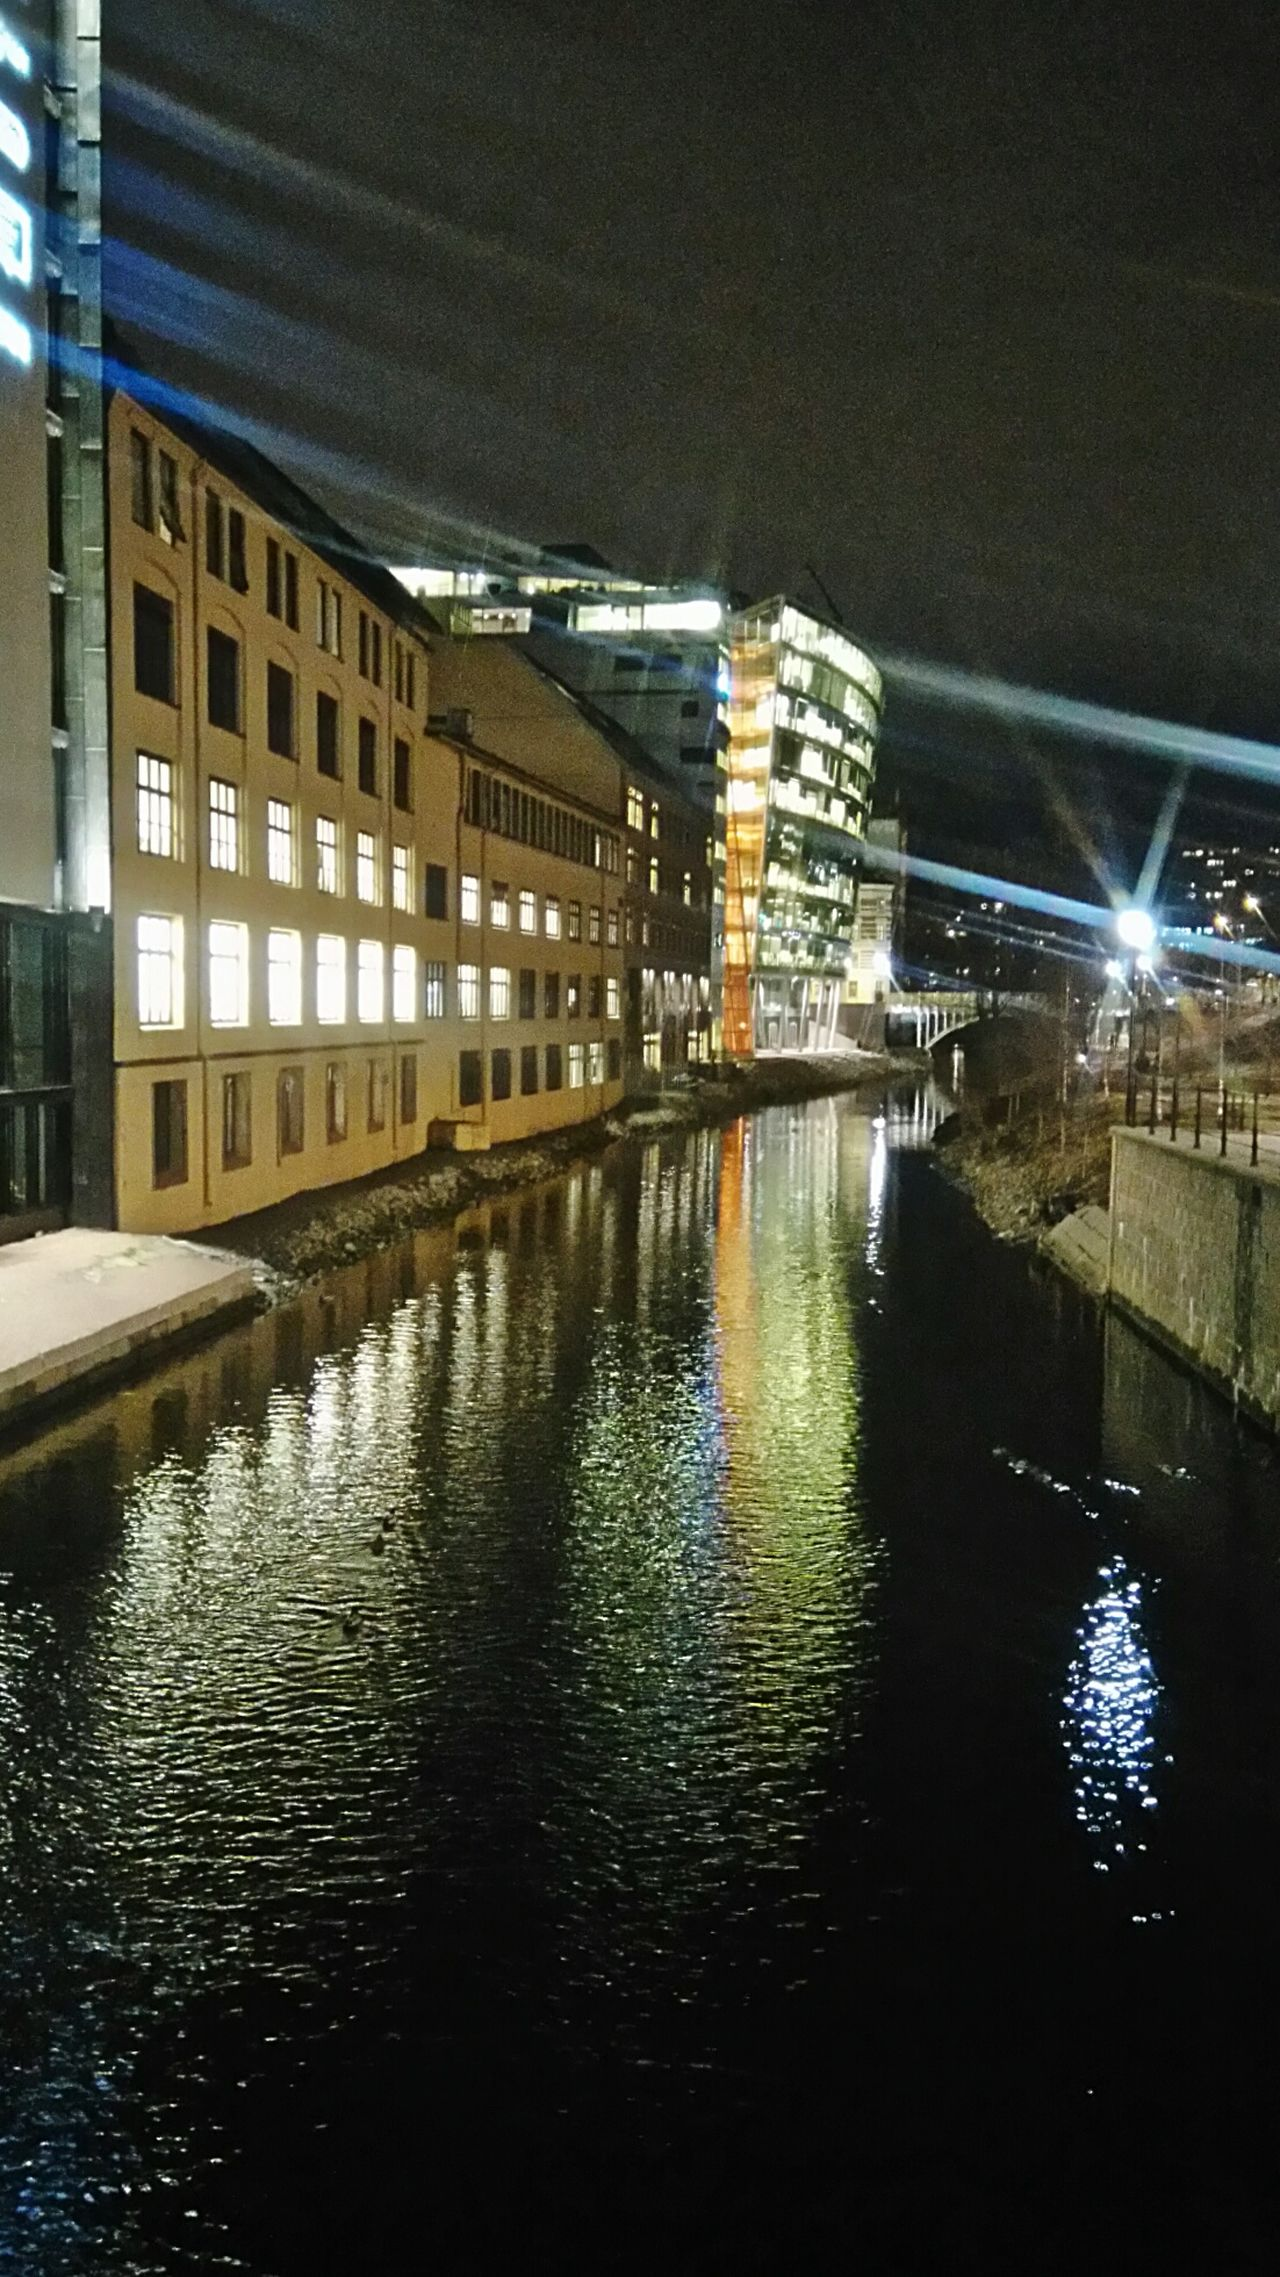 Architecture Built Structure Reflection Building Exterior City Water No People Illuminated Outdoors Sky Day Water Reflections River Cityexplorer Naturelovers Travel City Buildings Oslo Norway Oslo, Norway Beauty In Nature Nature Nature Photography Norway Travel Destinations